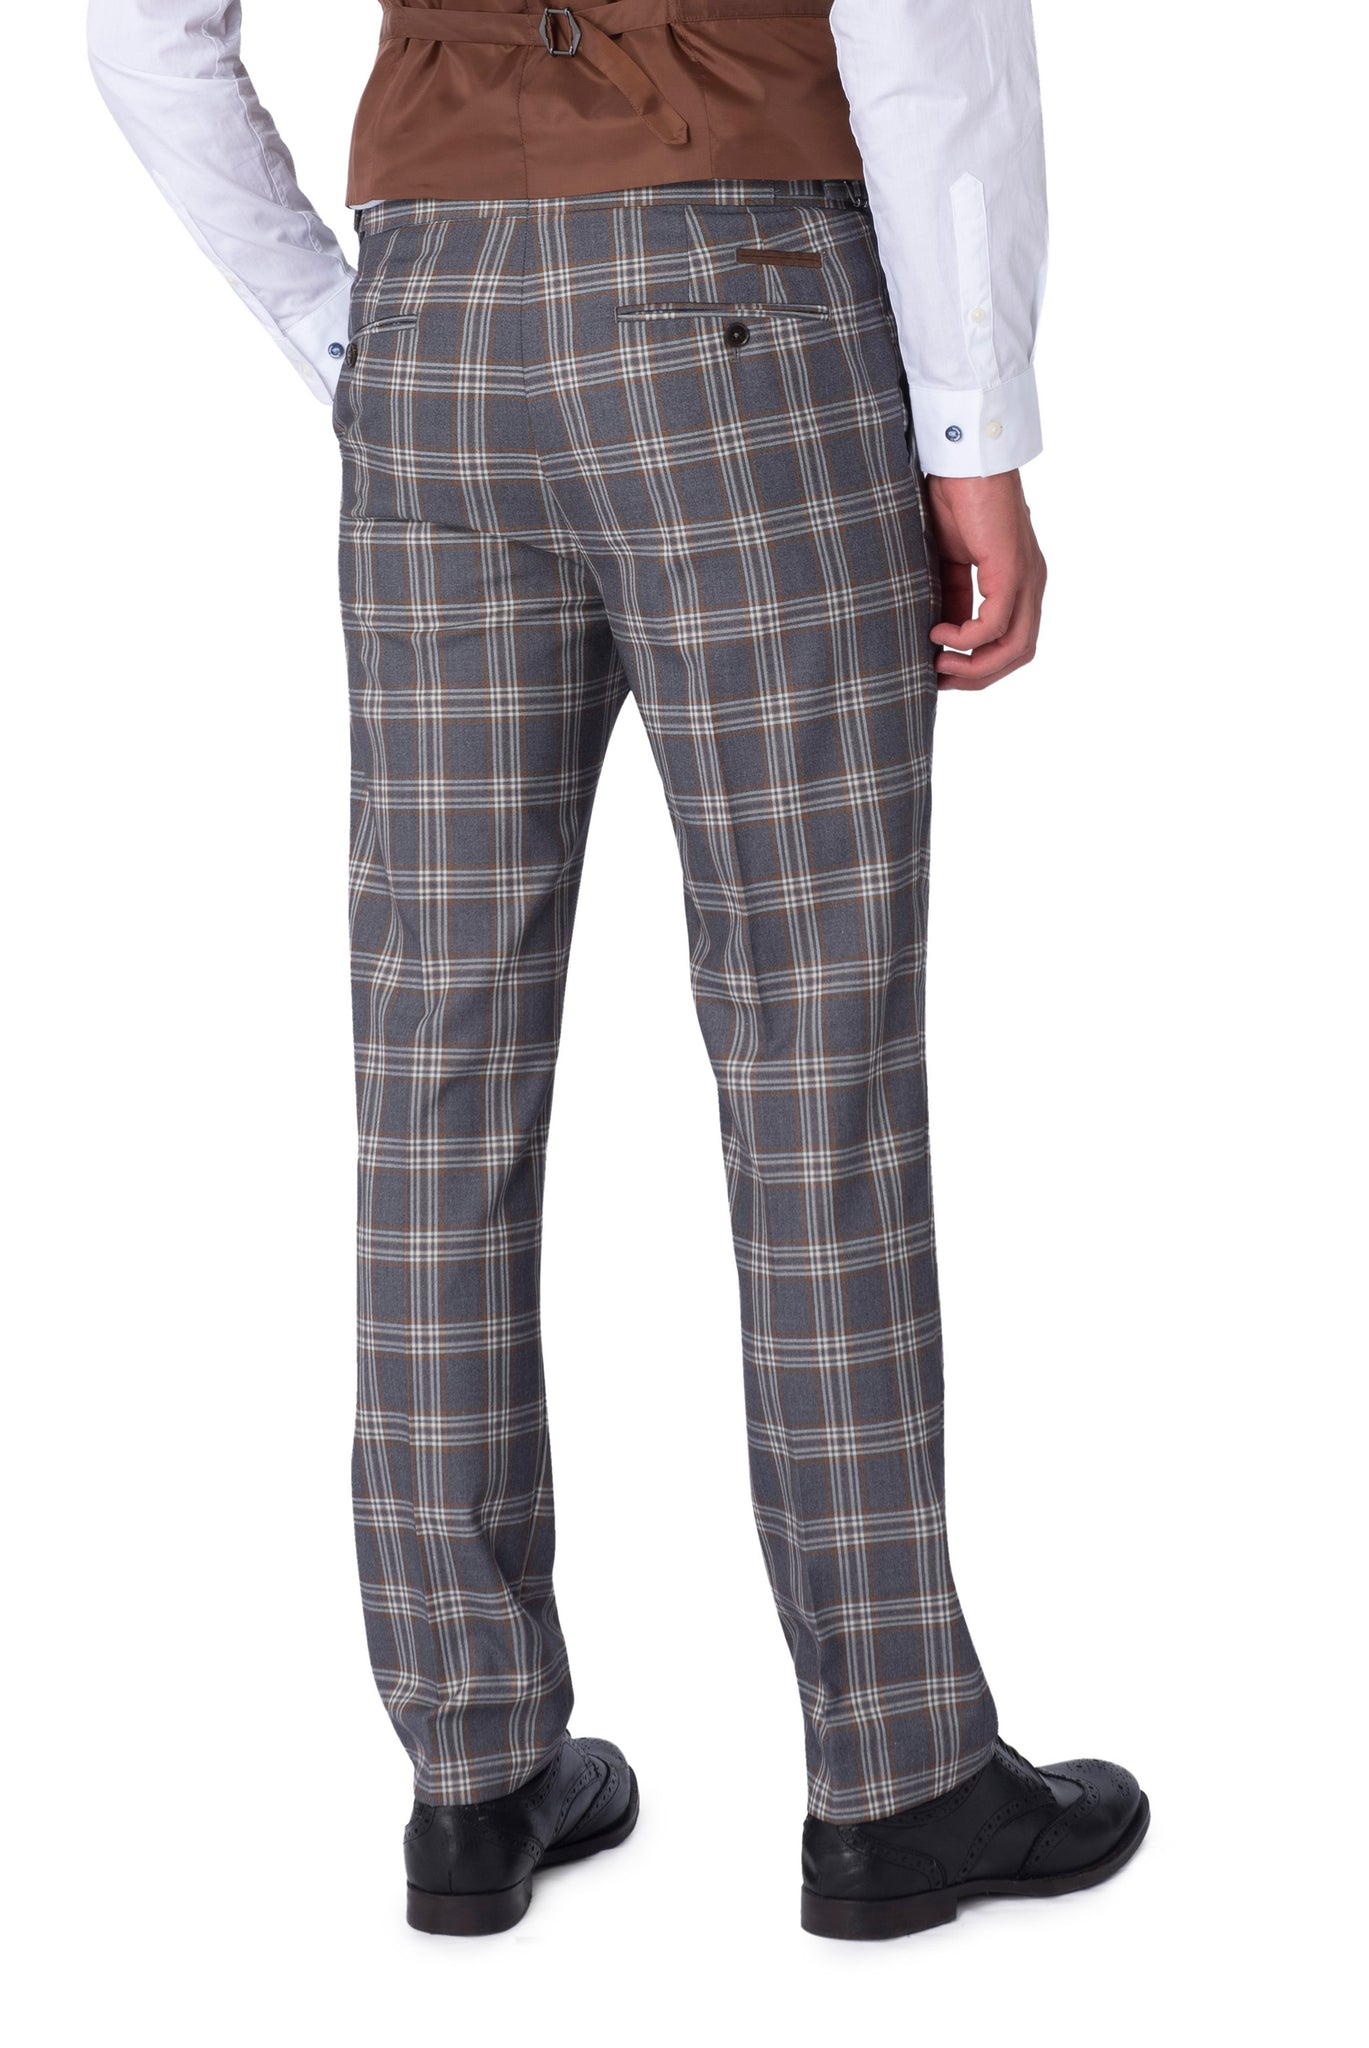 BOBBY Grey Check Slim Fit Suit Trousers